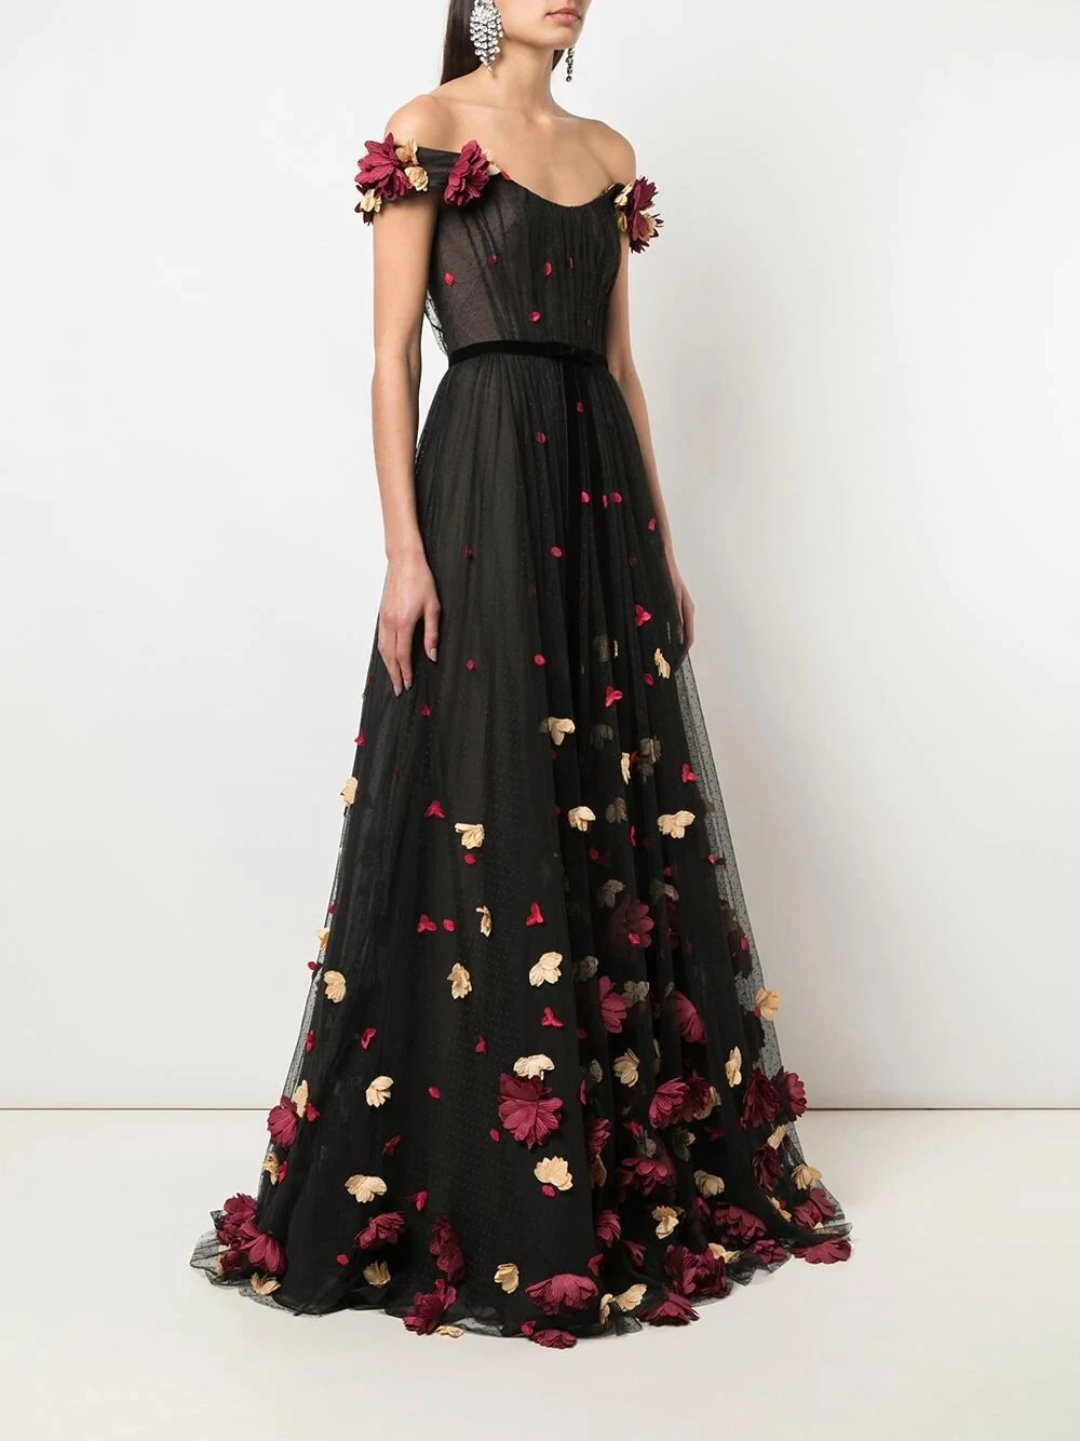 3D Floral Flocked Dot Gown